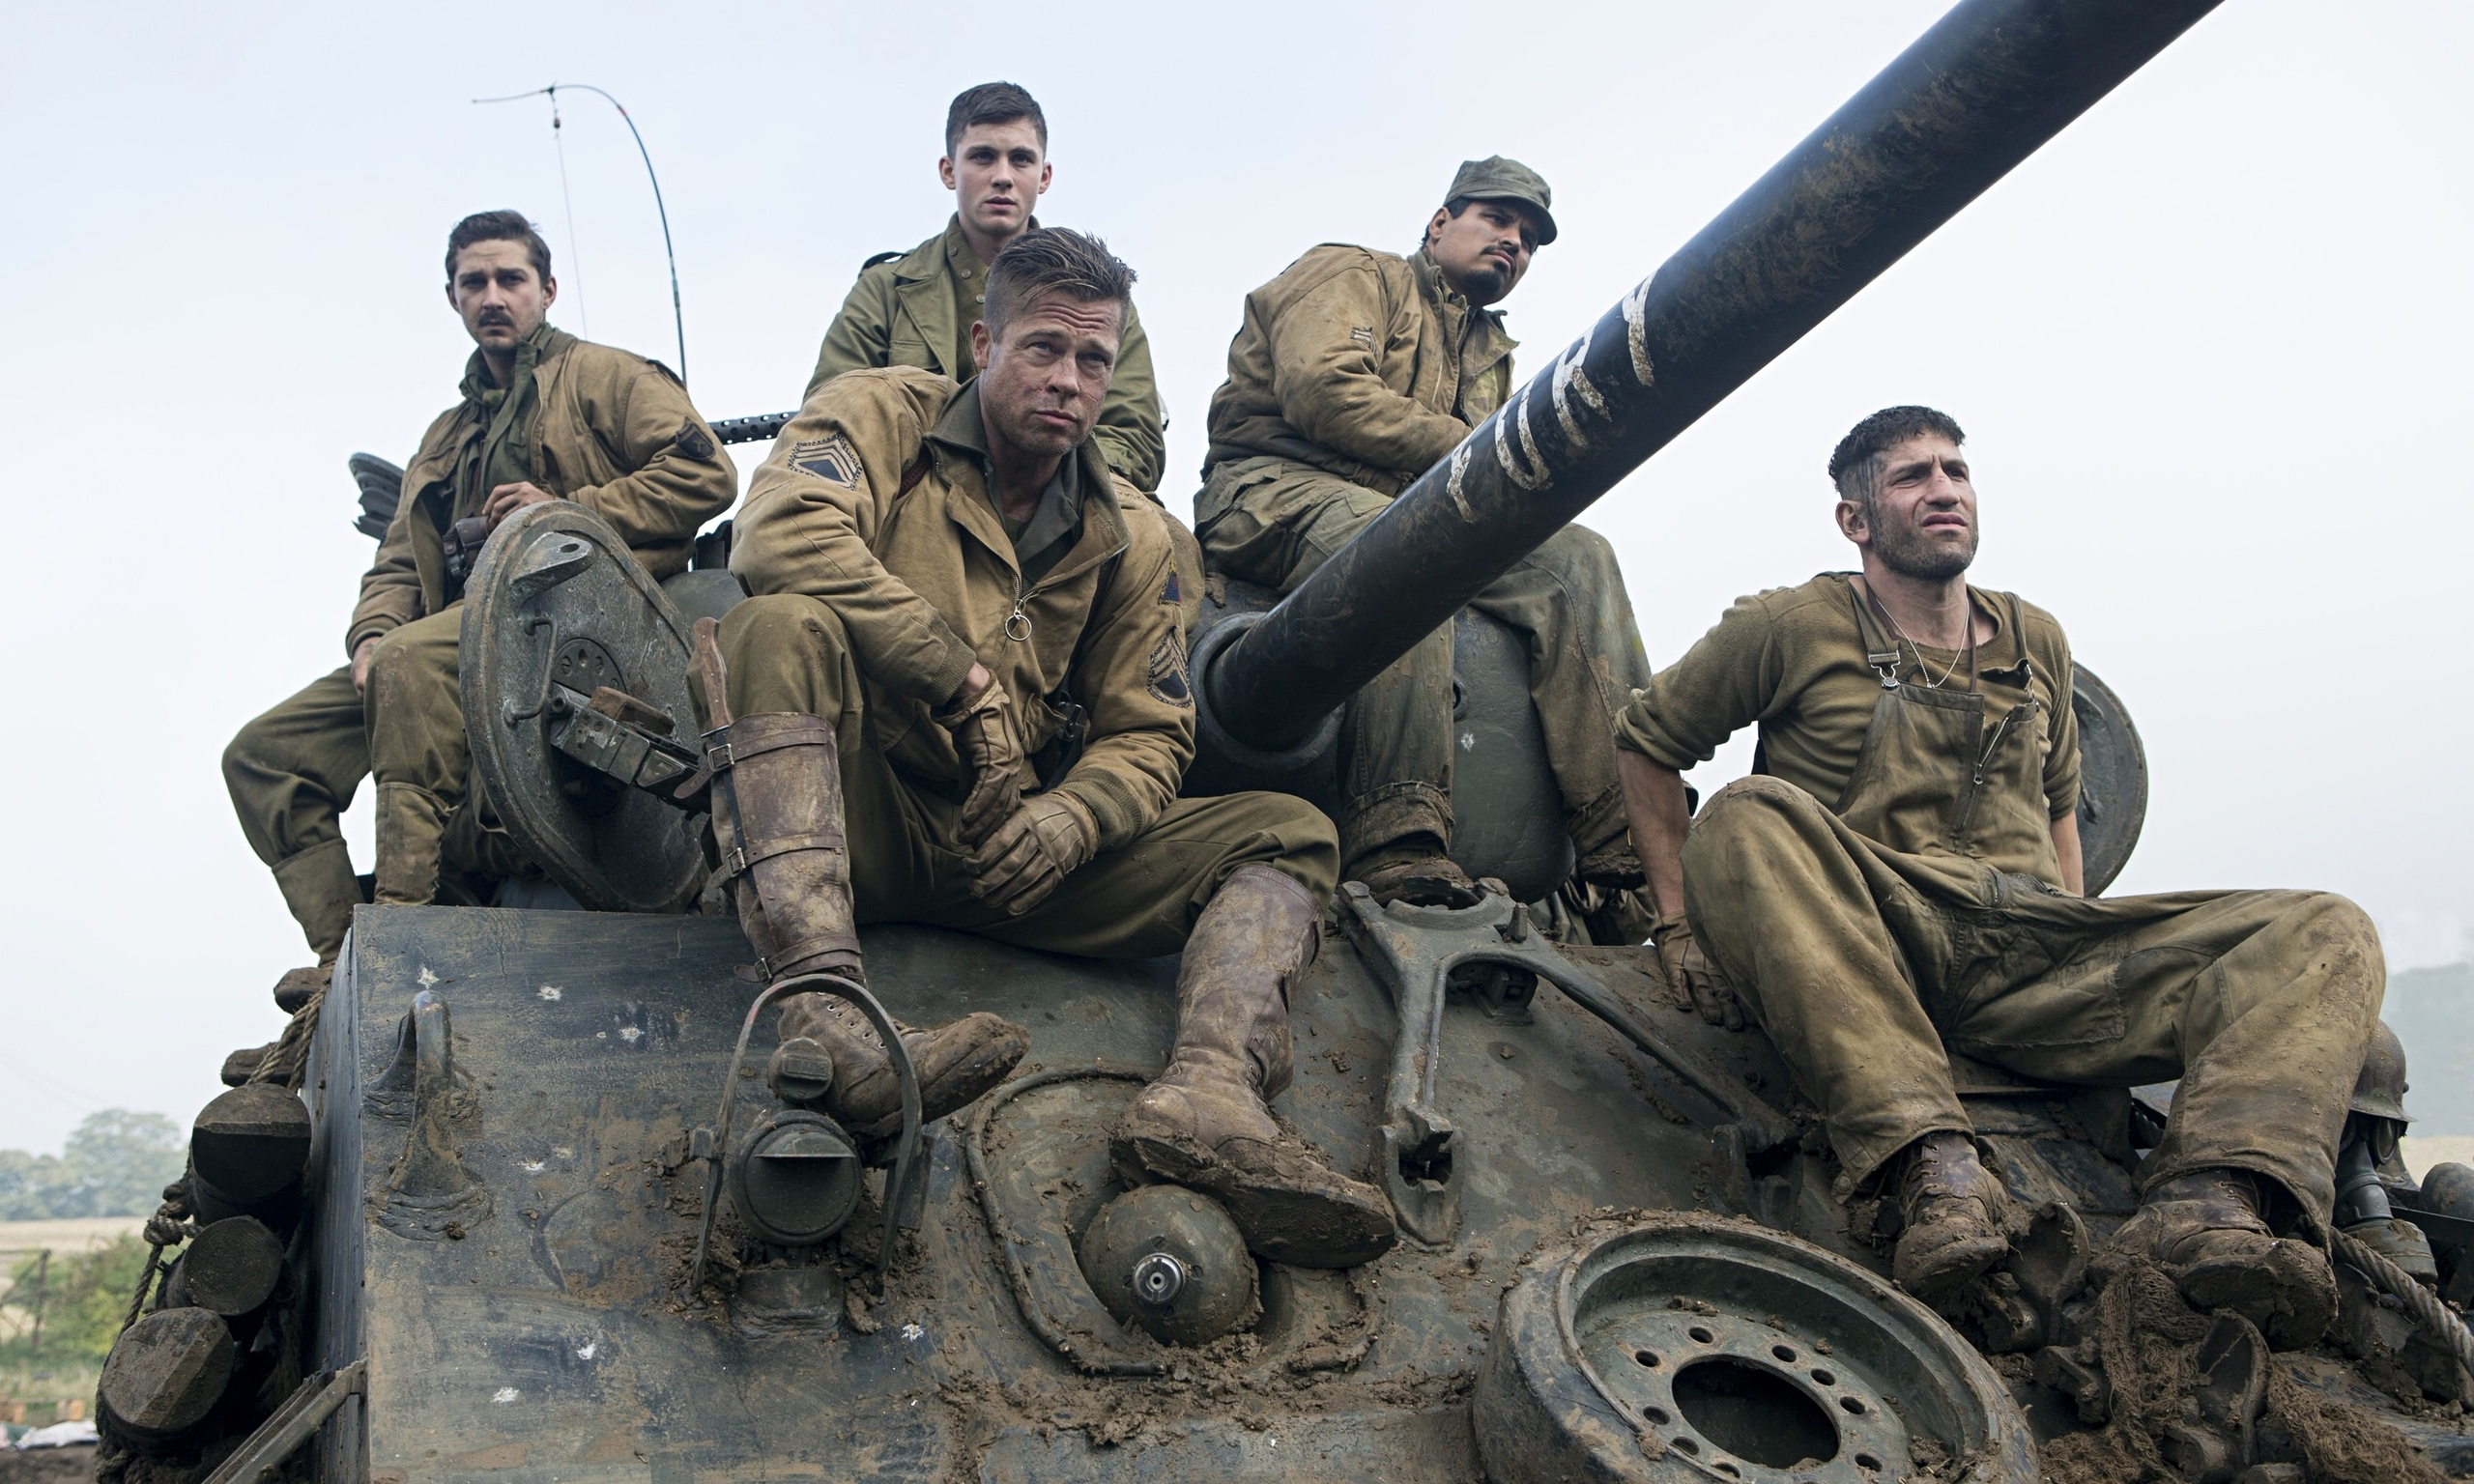 Images Of The Movie Fury: David Ayer: 'There's Something Maternal About The Tank In